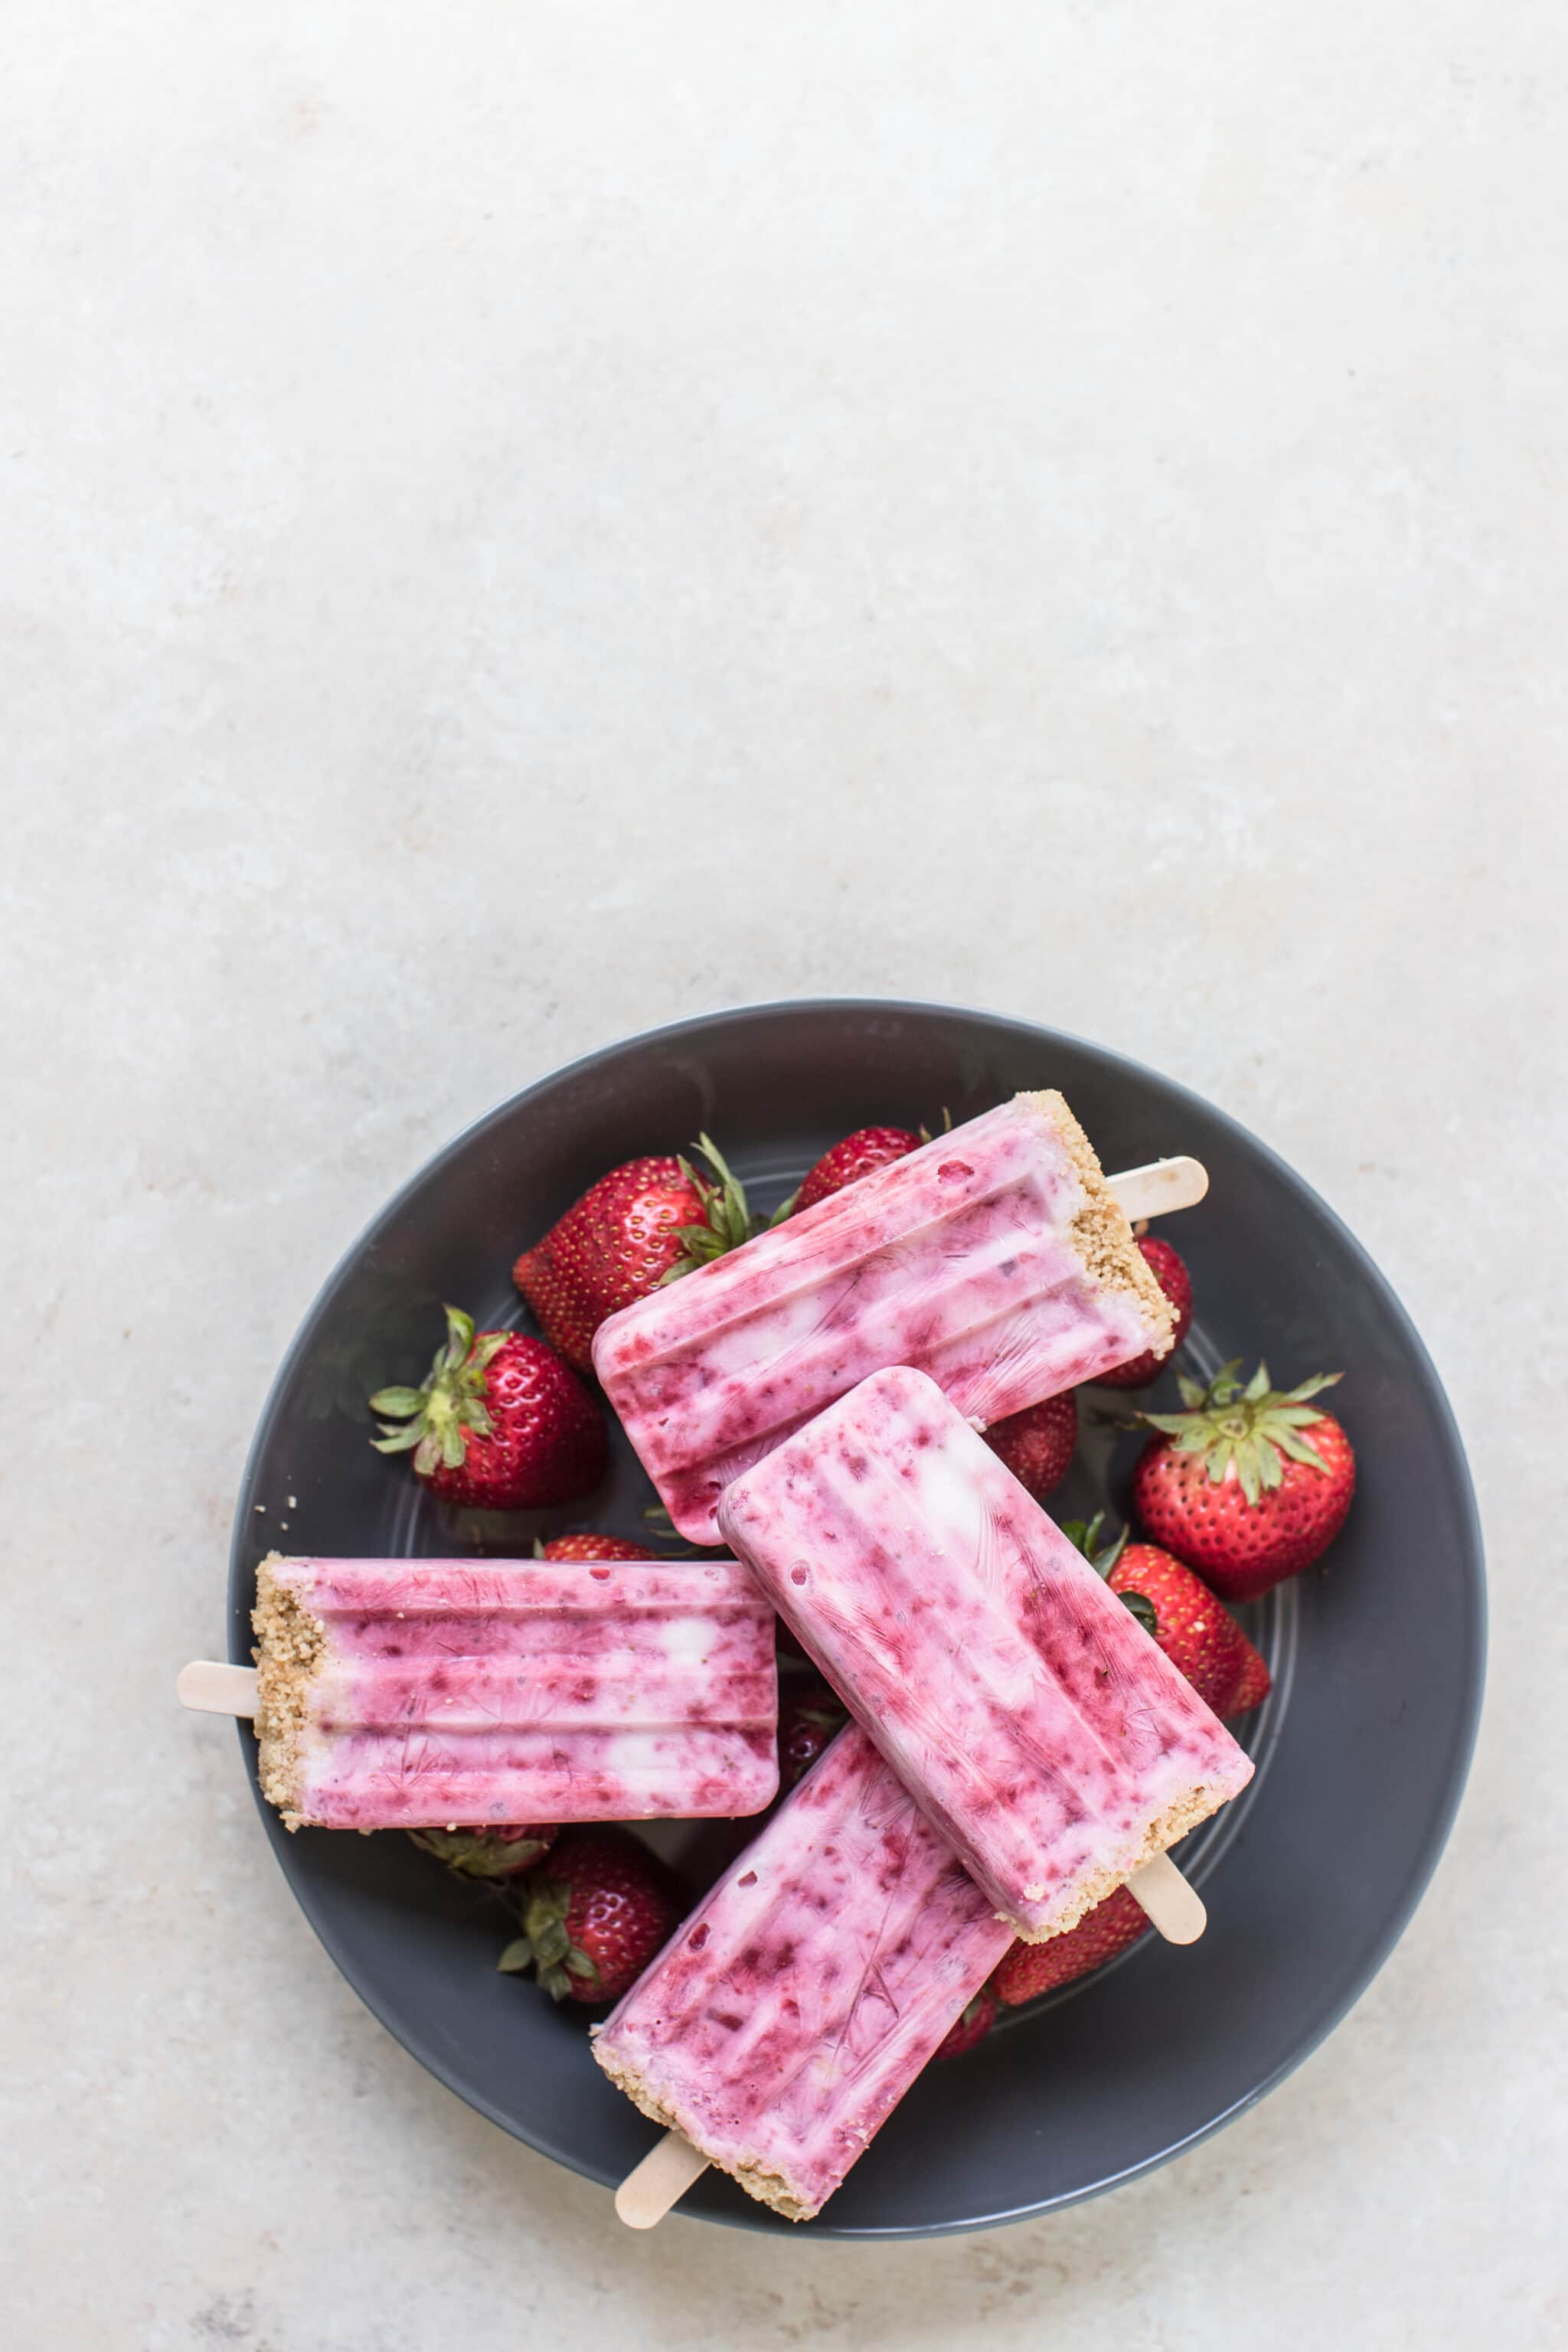 strawberry shortcake popsicles in a blue bowl